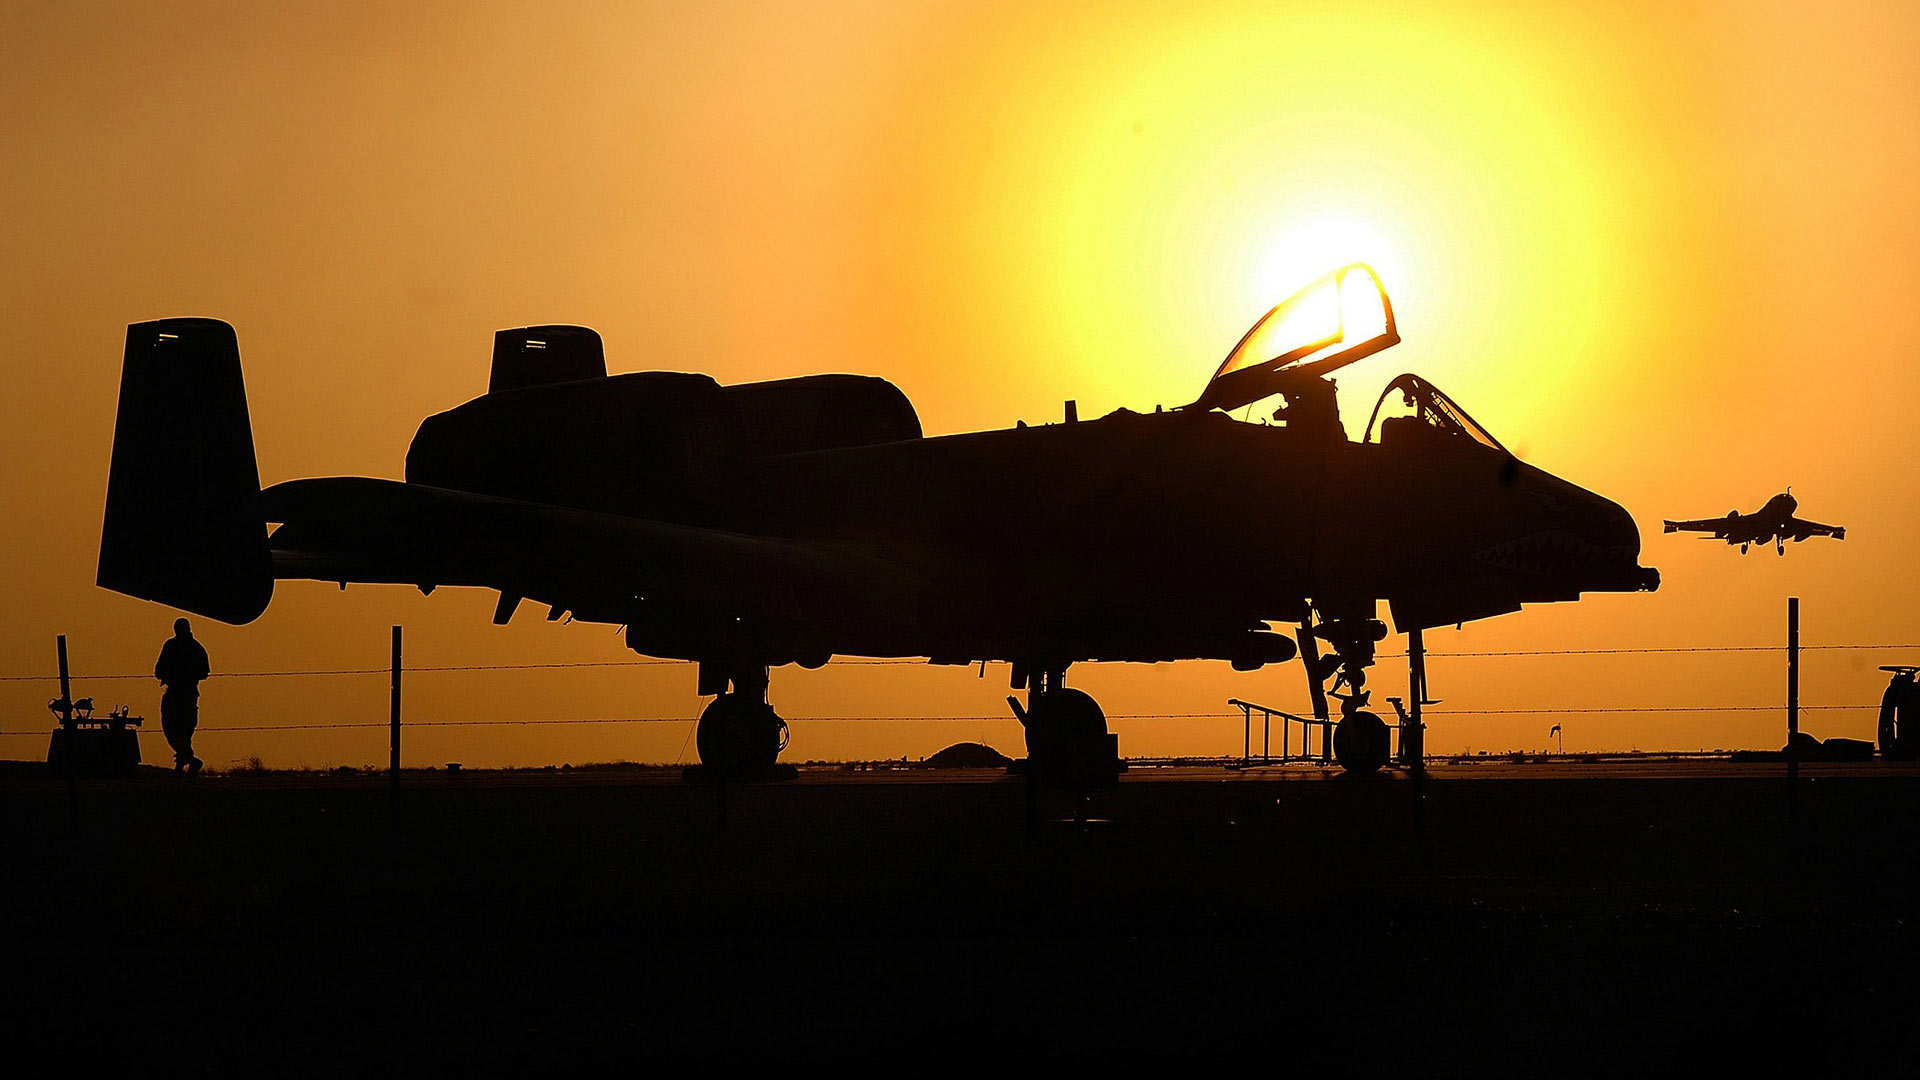 An A-10 aircraft silhouetted by the setting sun.